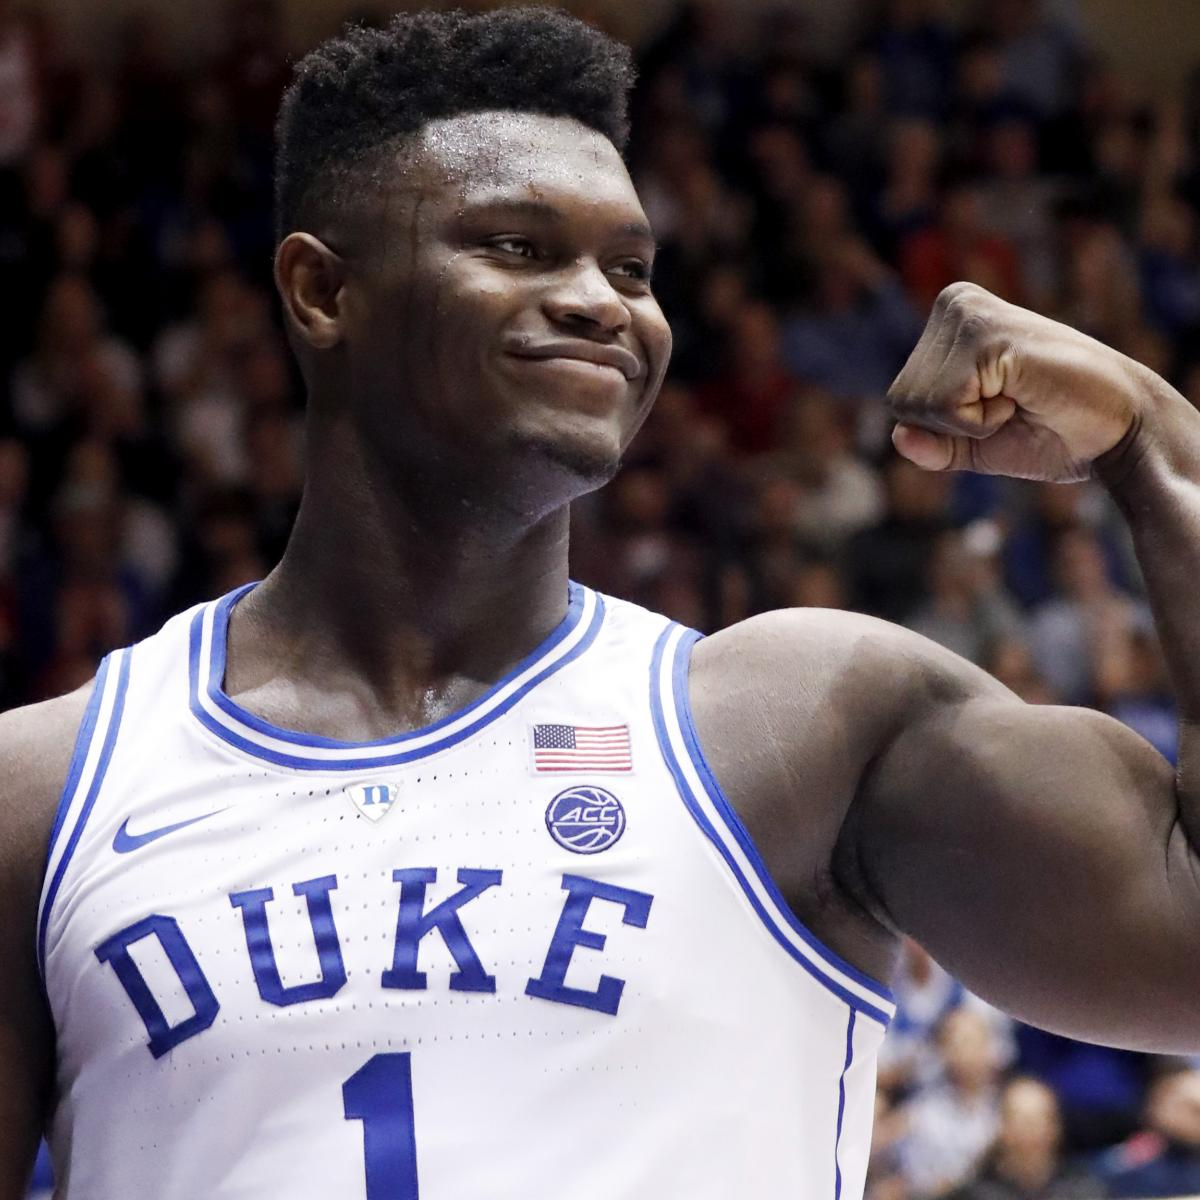 Duke's Zion Williamson Says He Gained 100 Pounds in 2 Years